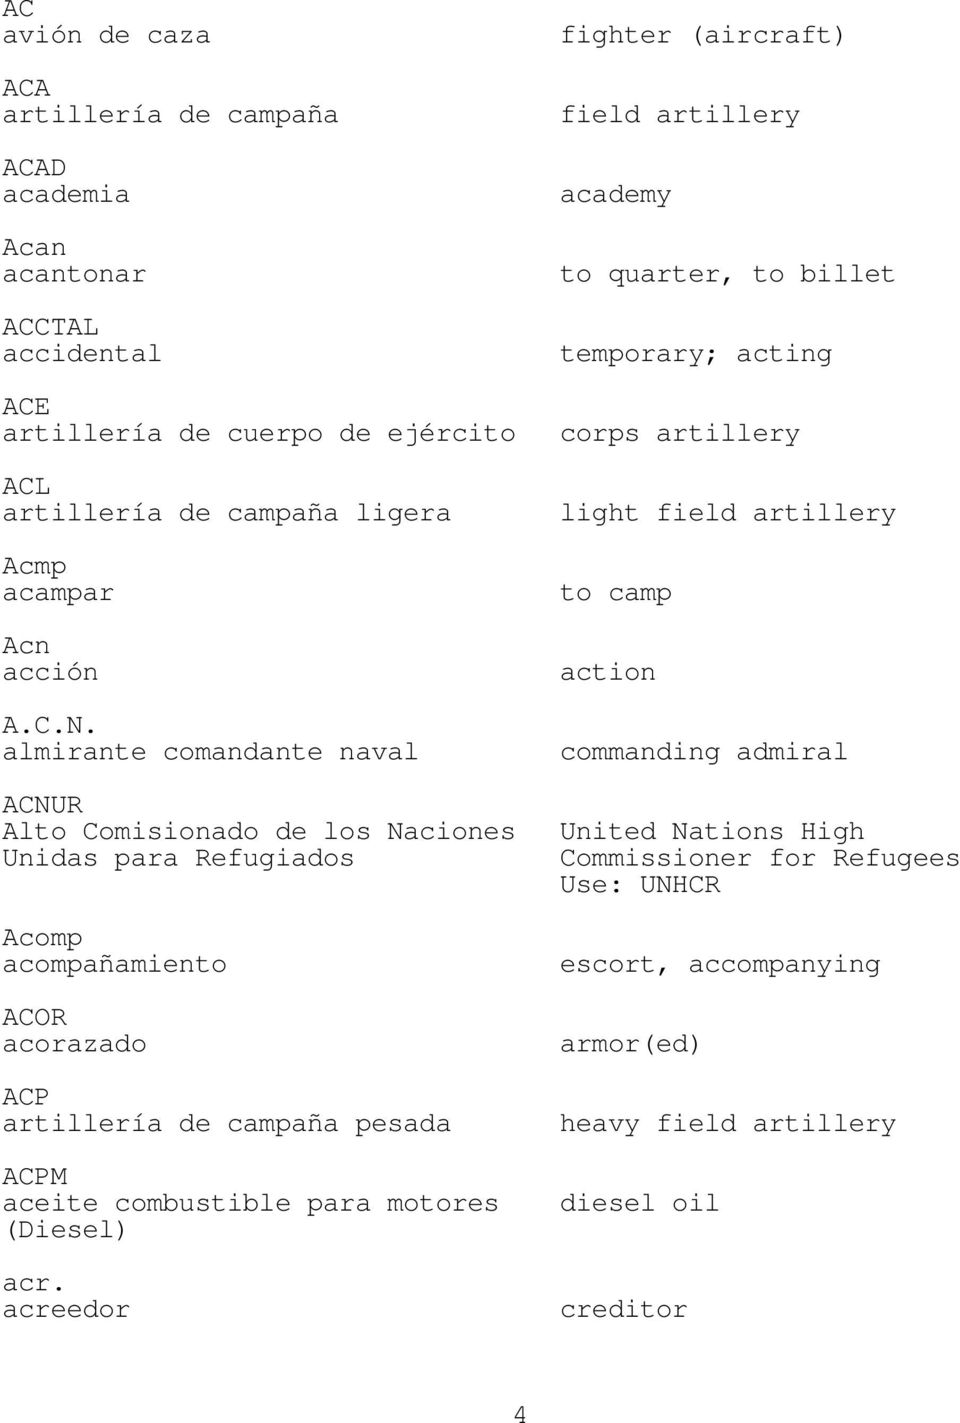 almirante comandante naval light field artillery to camp action commanding admiral ACNUR Alto Comisionado de los Naciones United Nations High Unidas para Refugiados